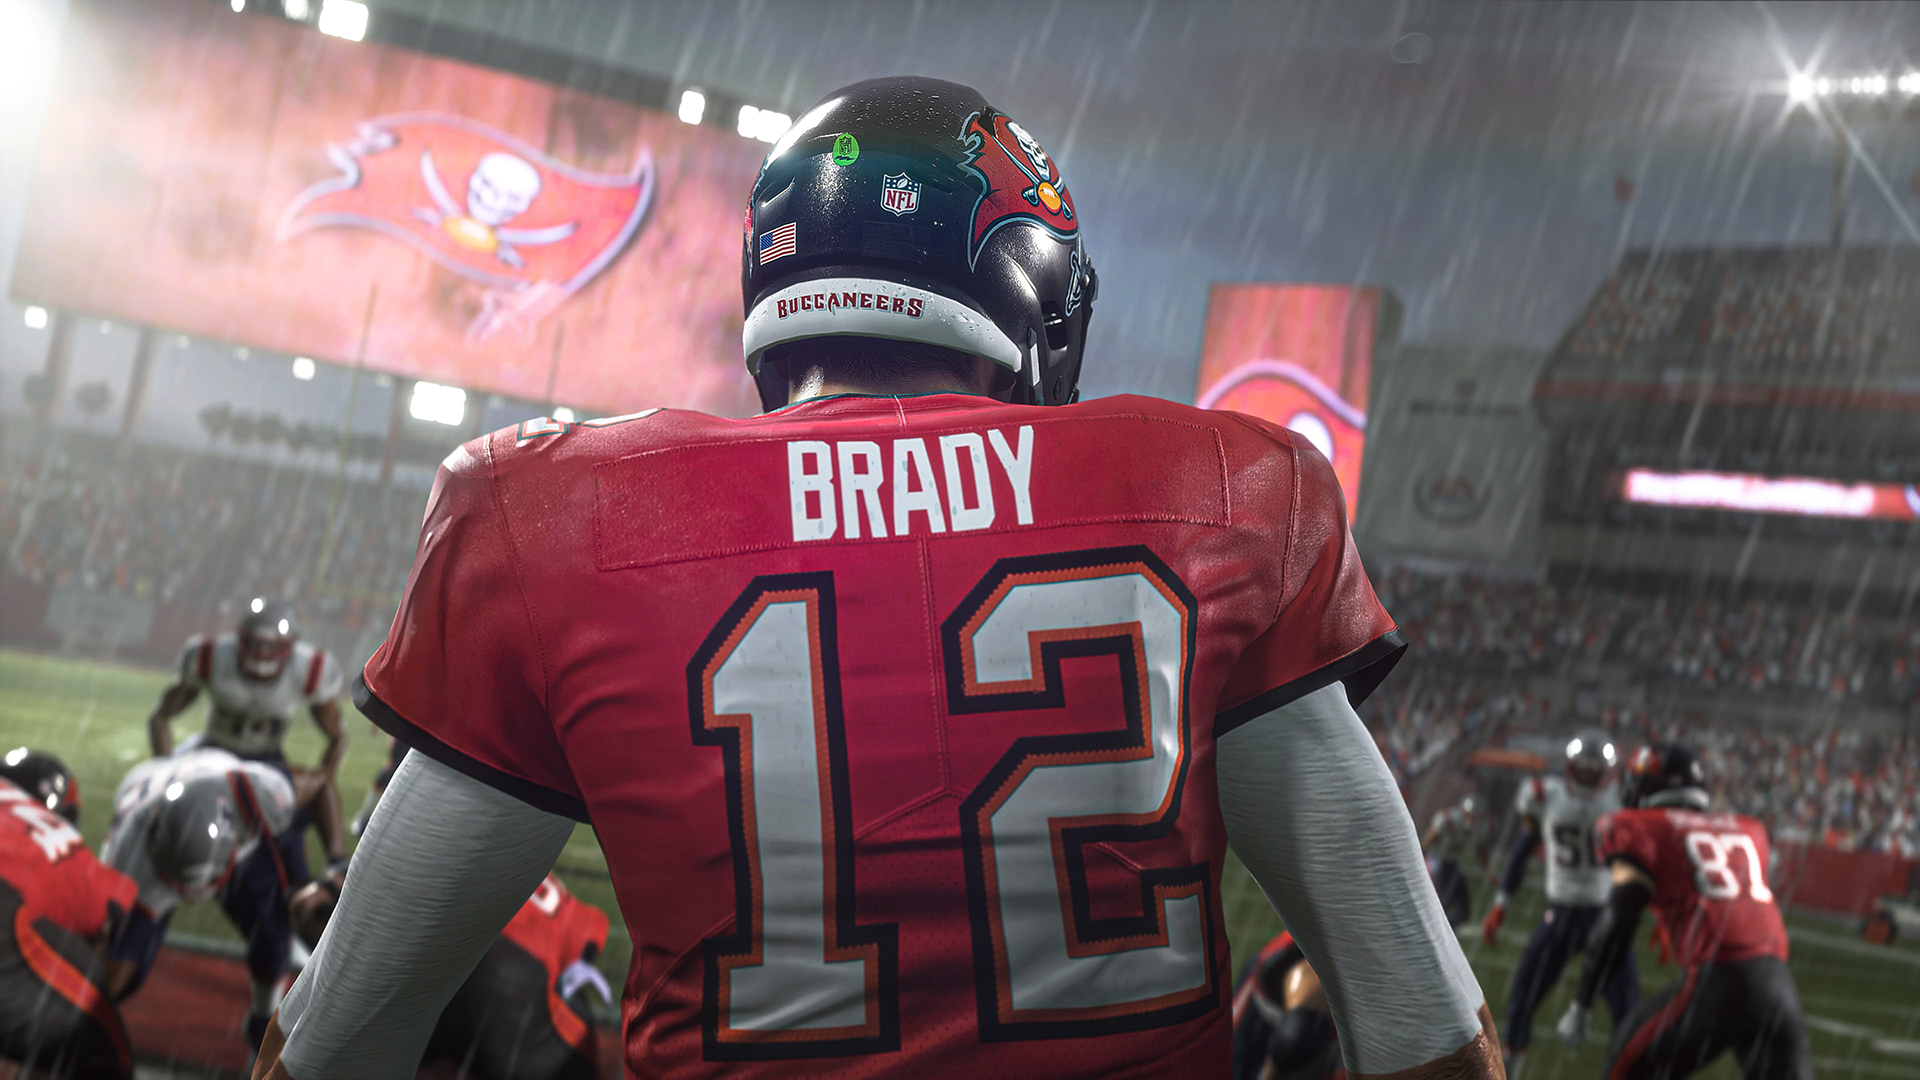 Madden 21 release date, cost, new features, editions: A guide to everything you need to know in 2020 1